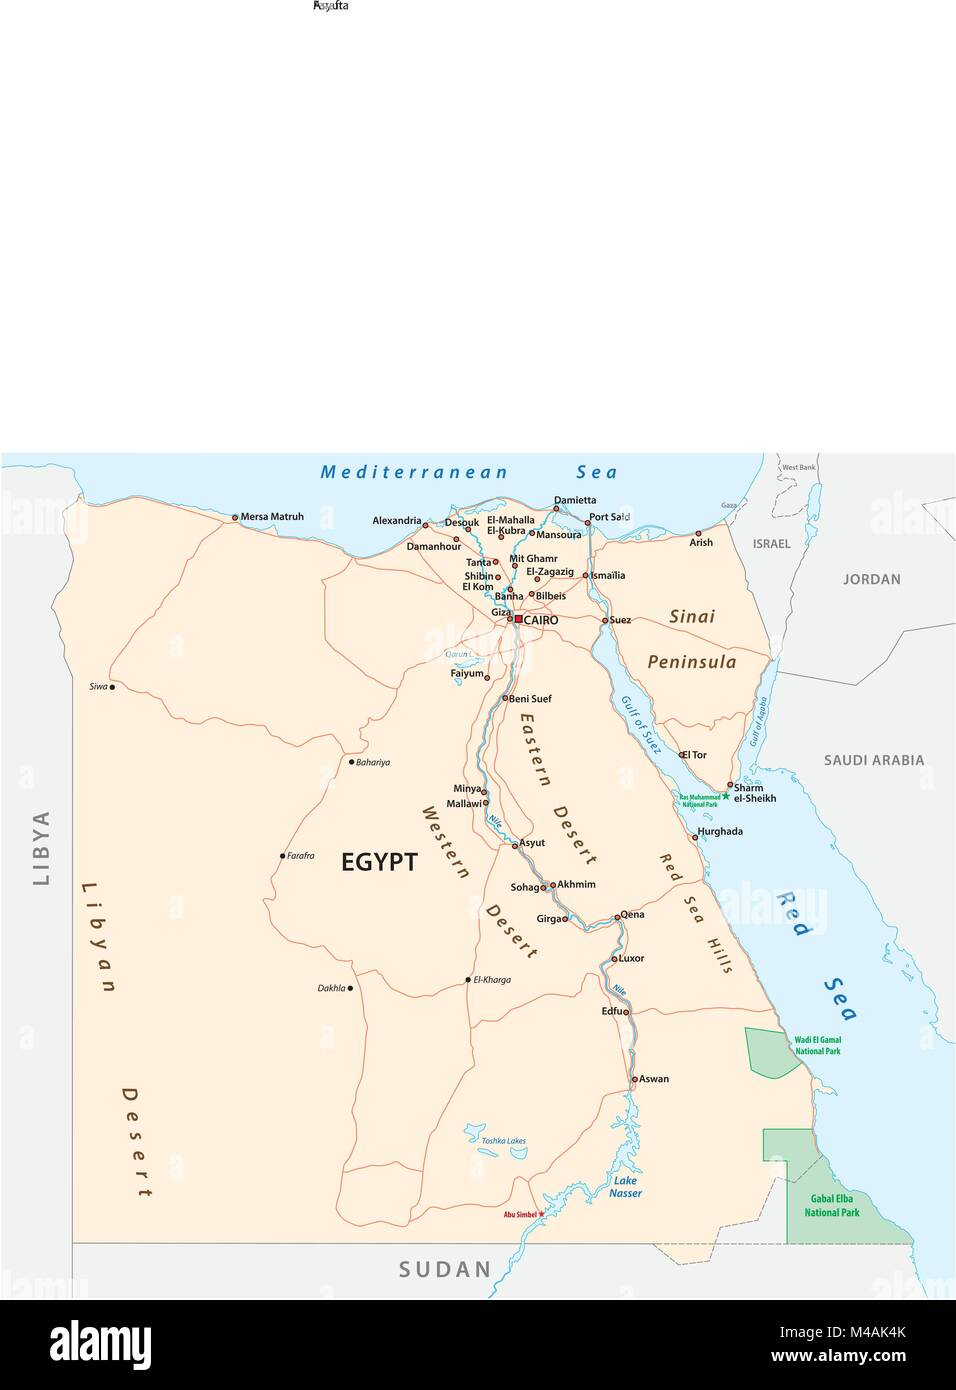 Roads vector map of the Arab Republic of Egypt - Stock Image